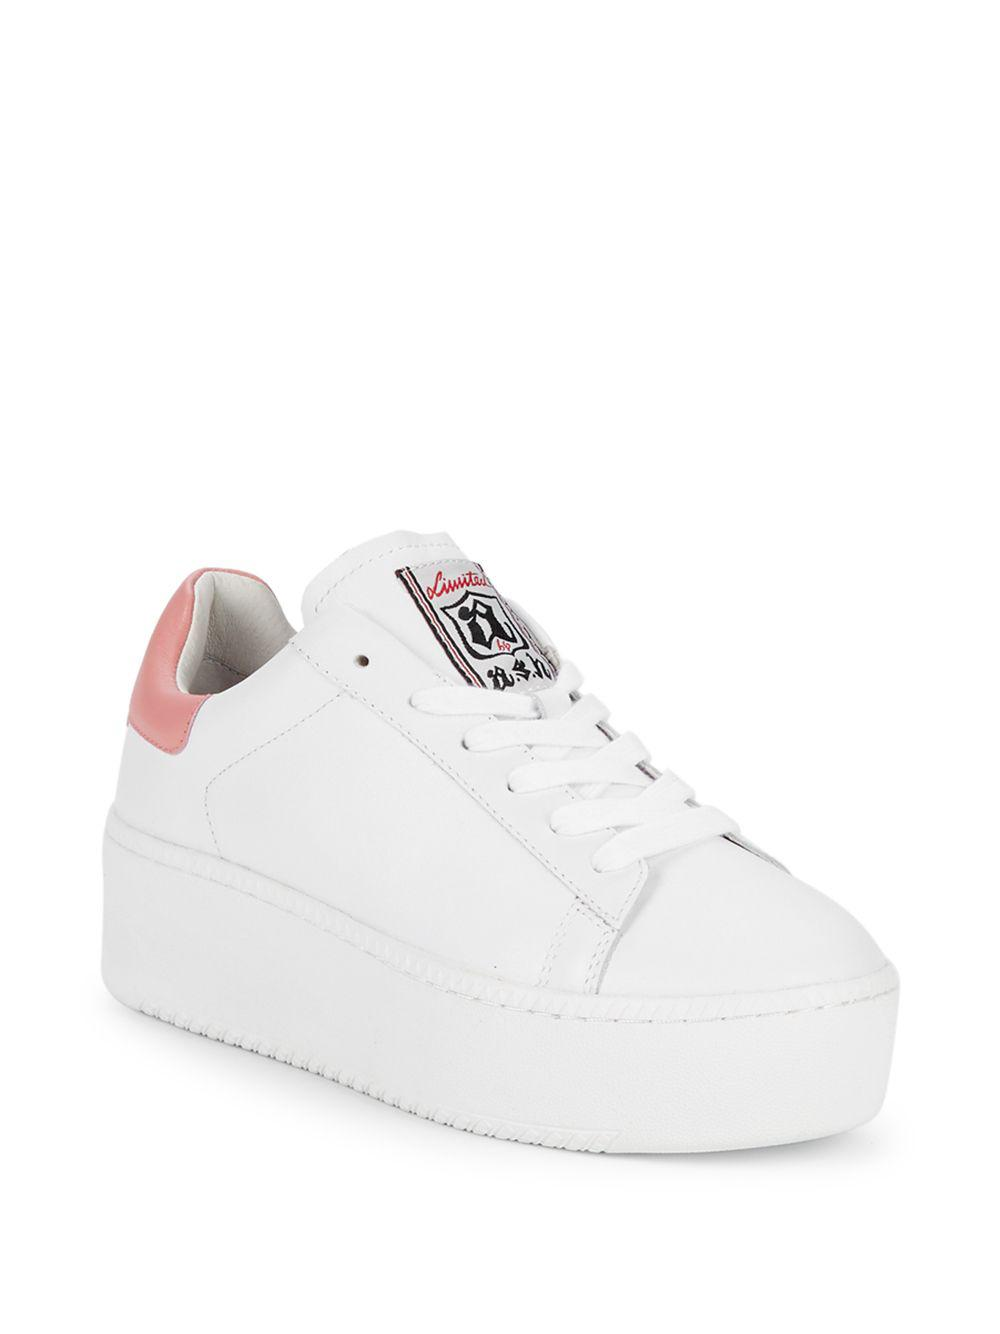 654b3fa1f4e1 Lyst - Ash Cult Leather Platform Sneaker in White - Save 62%